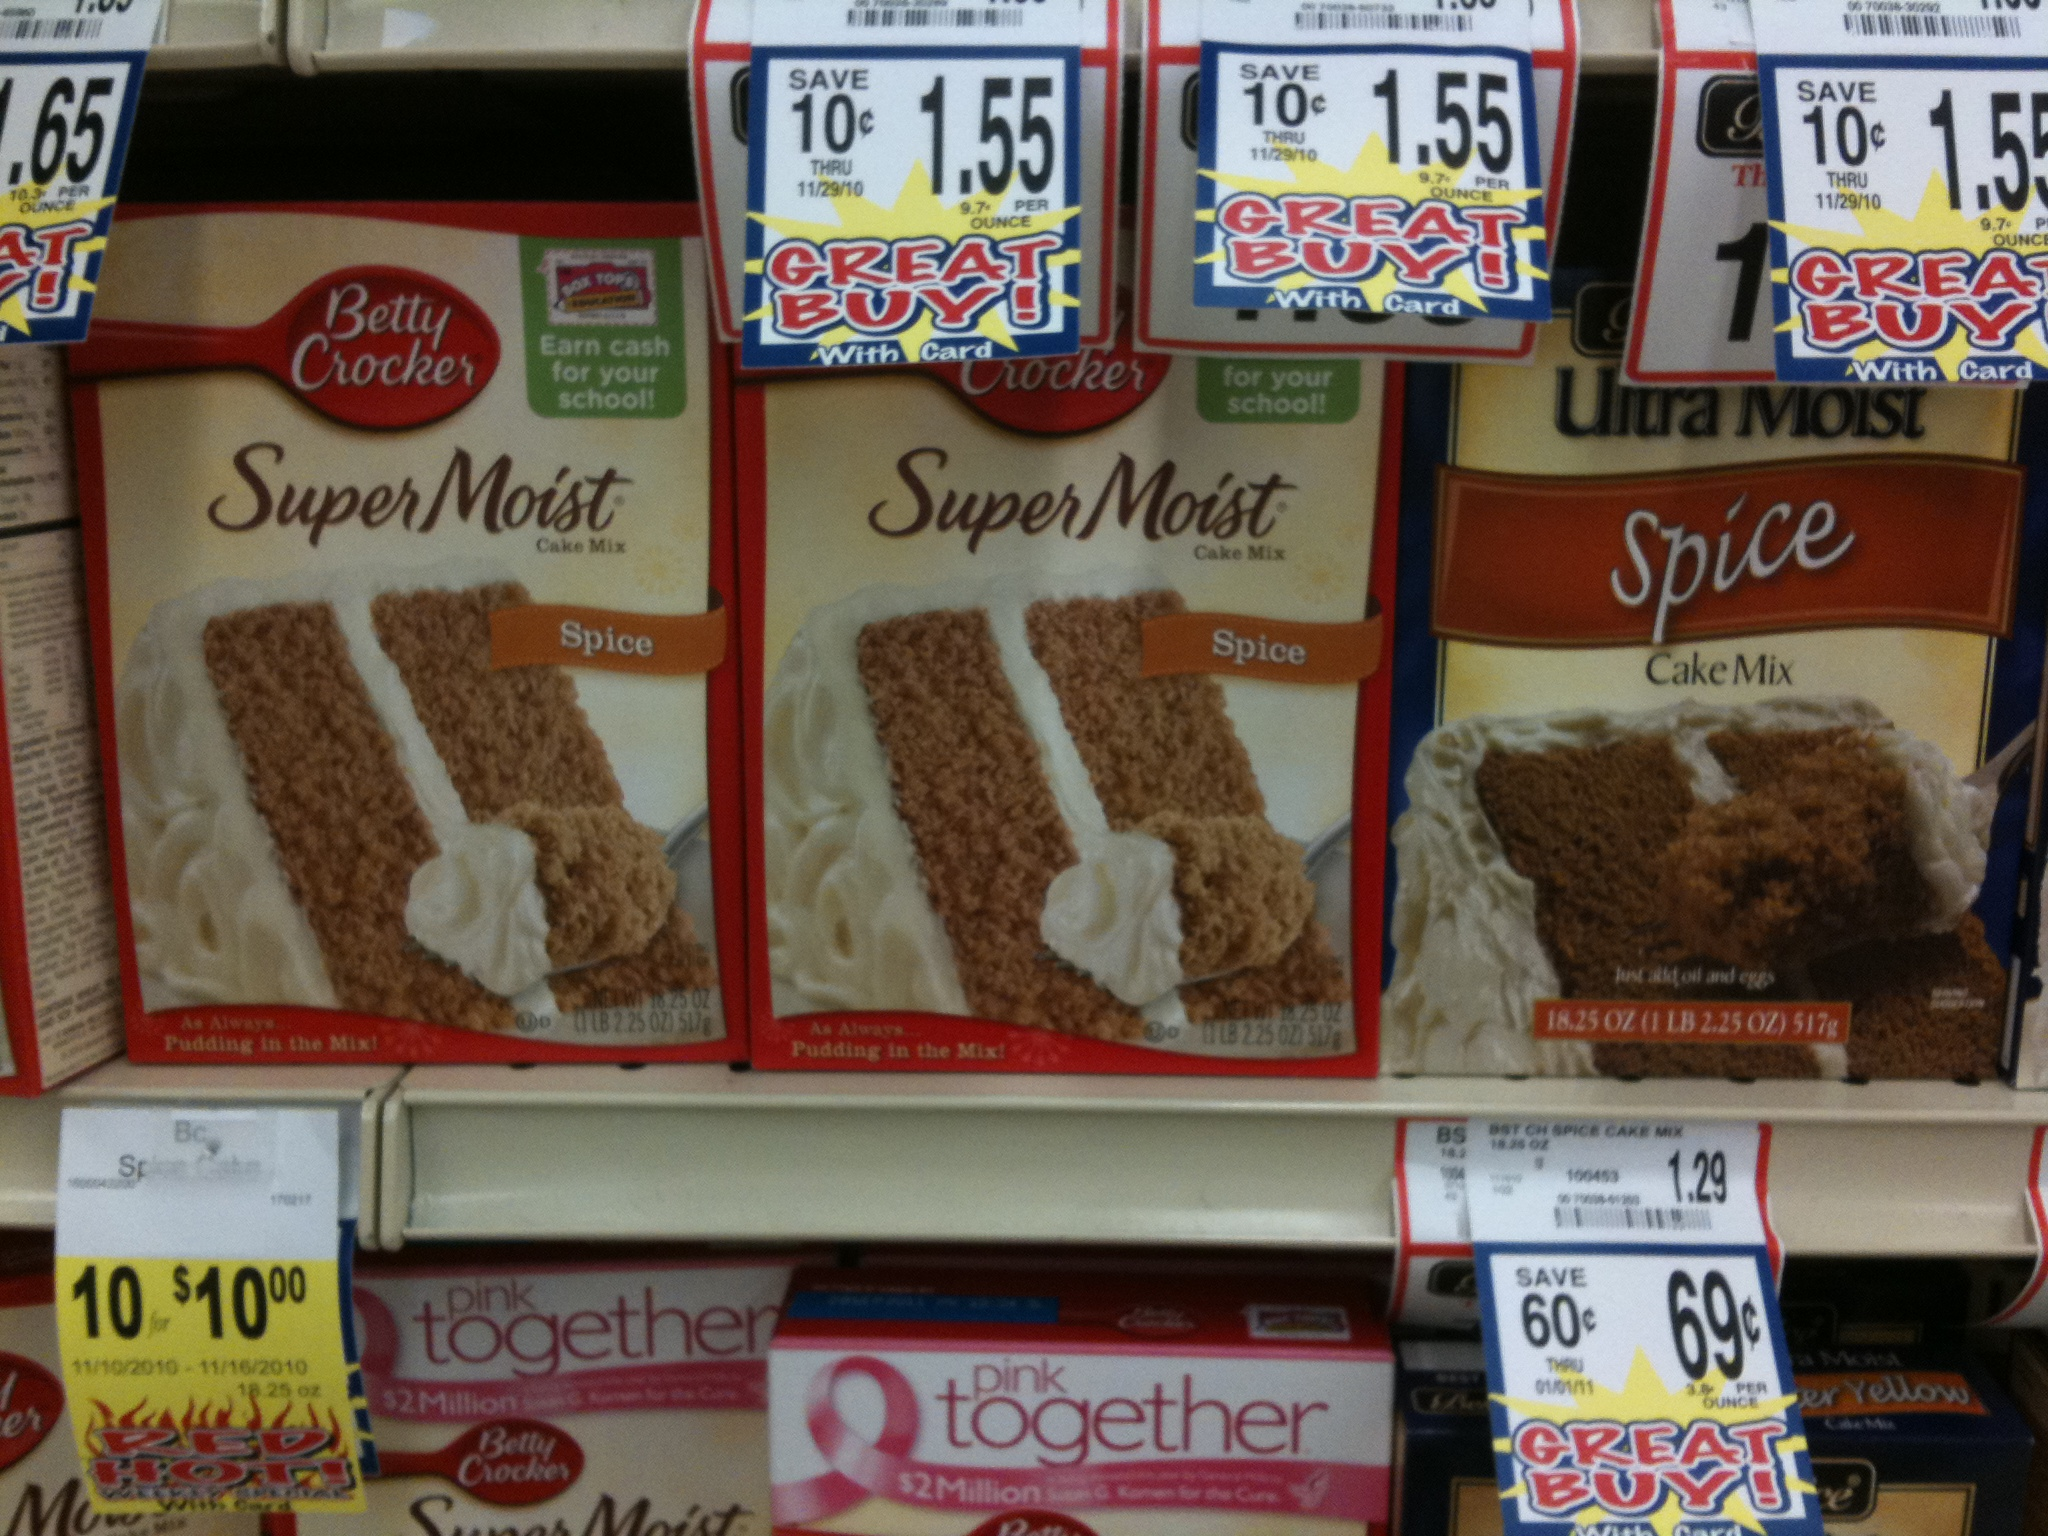 Where To Buy Spice Cake Mix